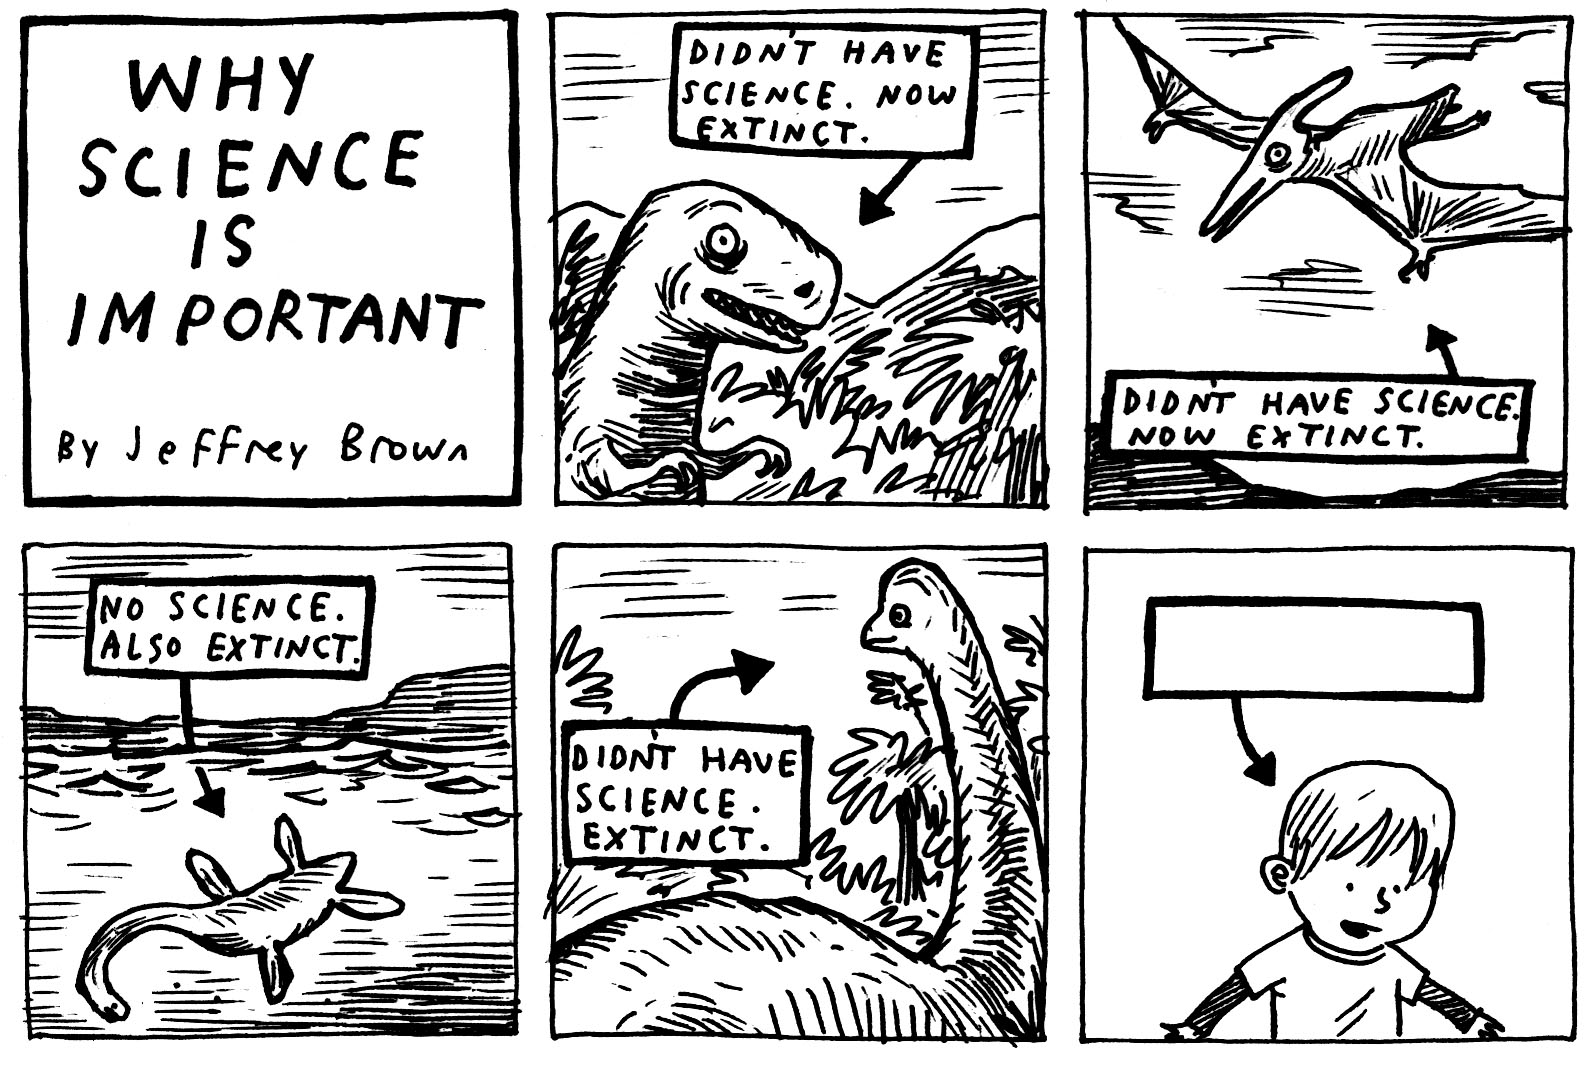 Comic strip of science